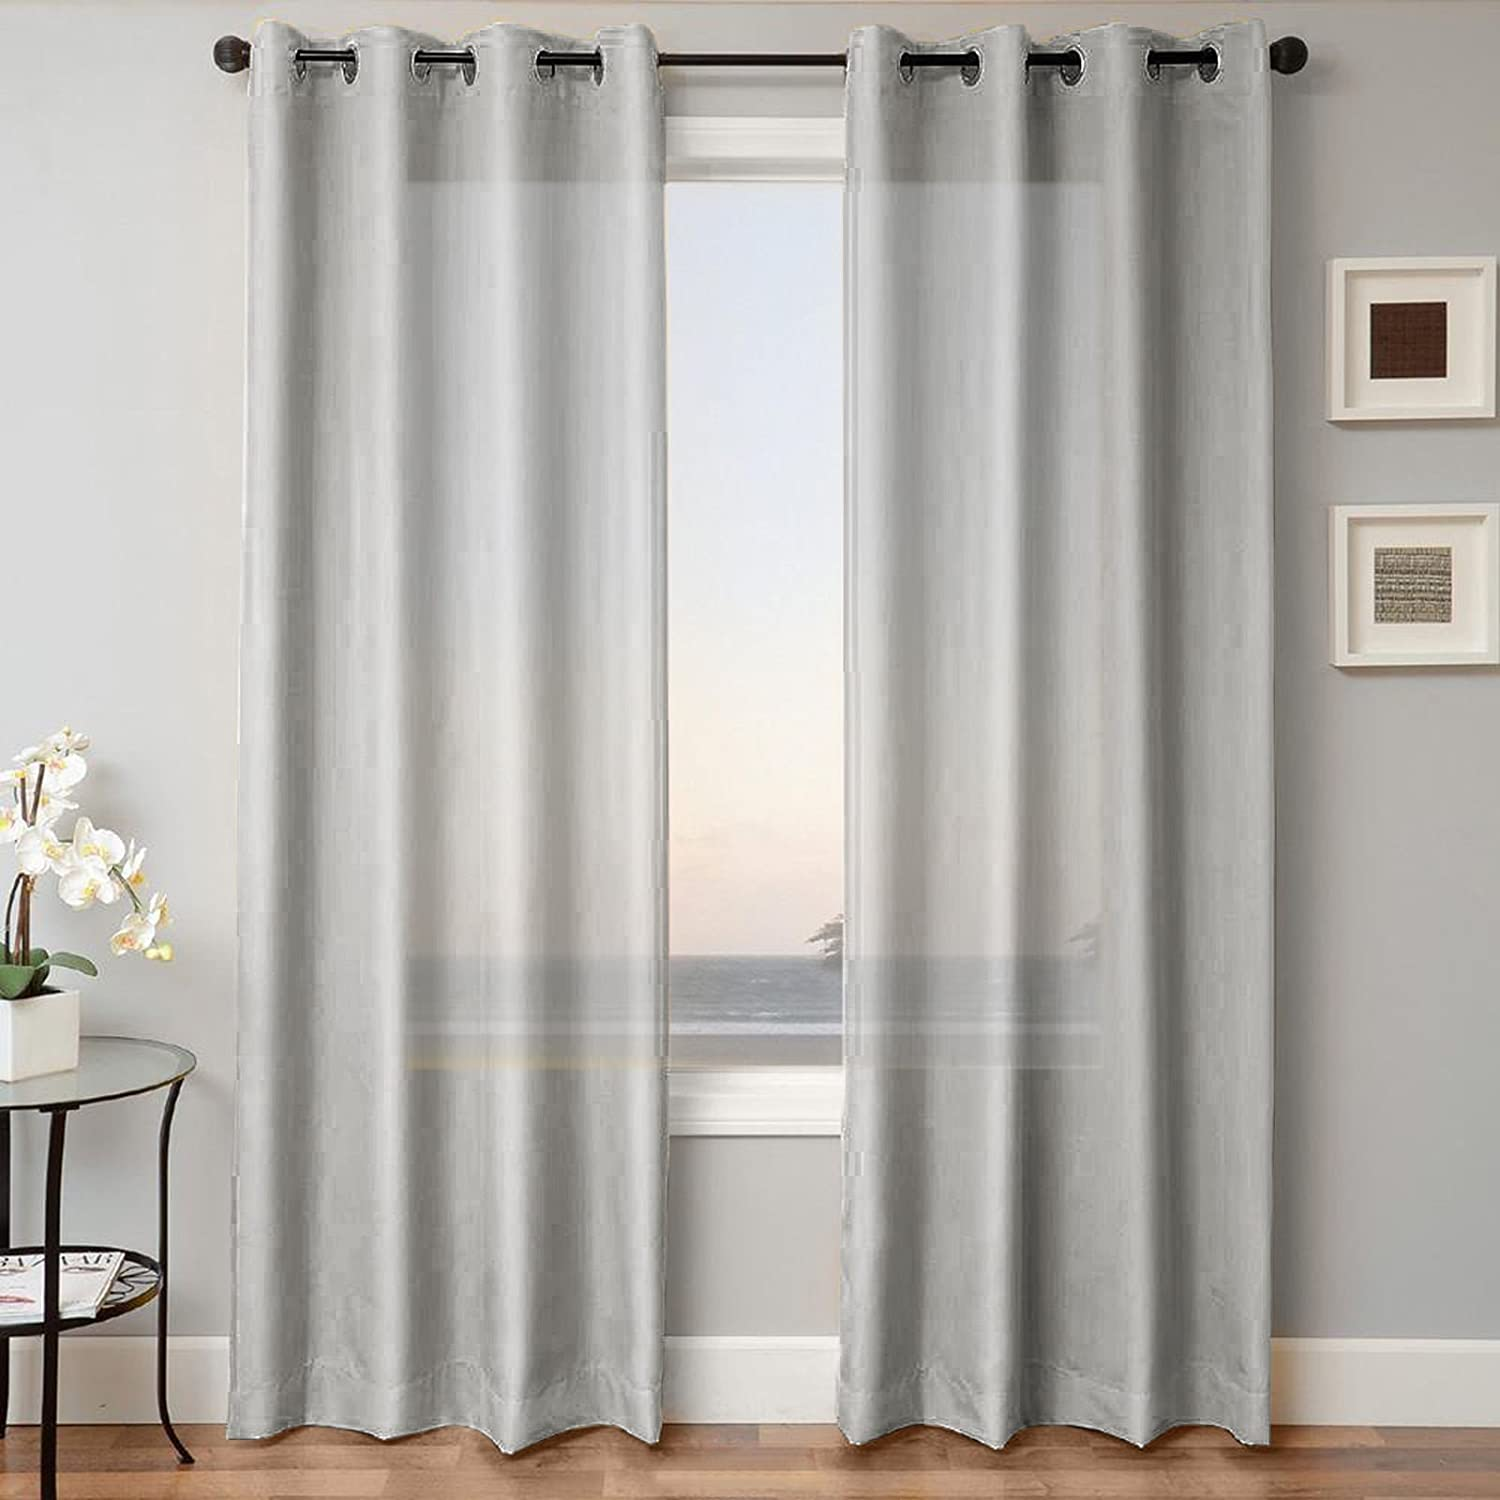 LuxuryDiscounts 2 Piece Solid Faux Silk Grommet Window Curtain Treatment Panel Drapes